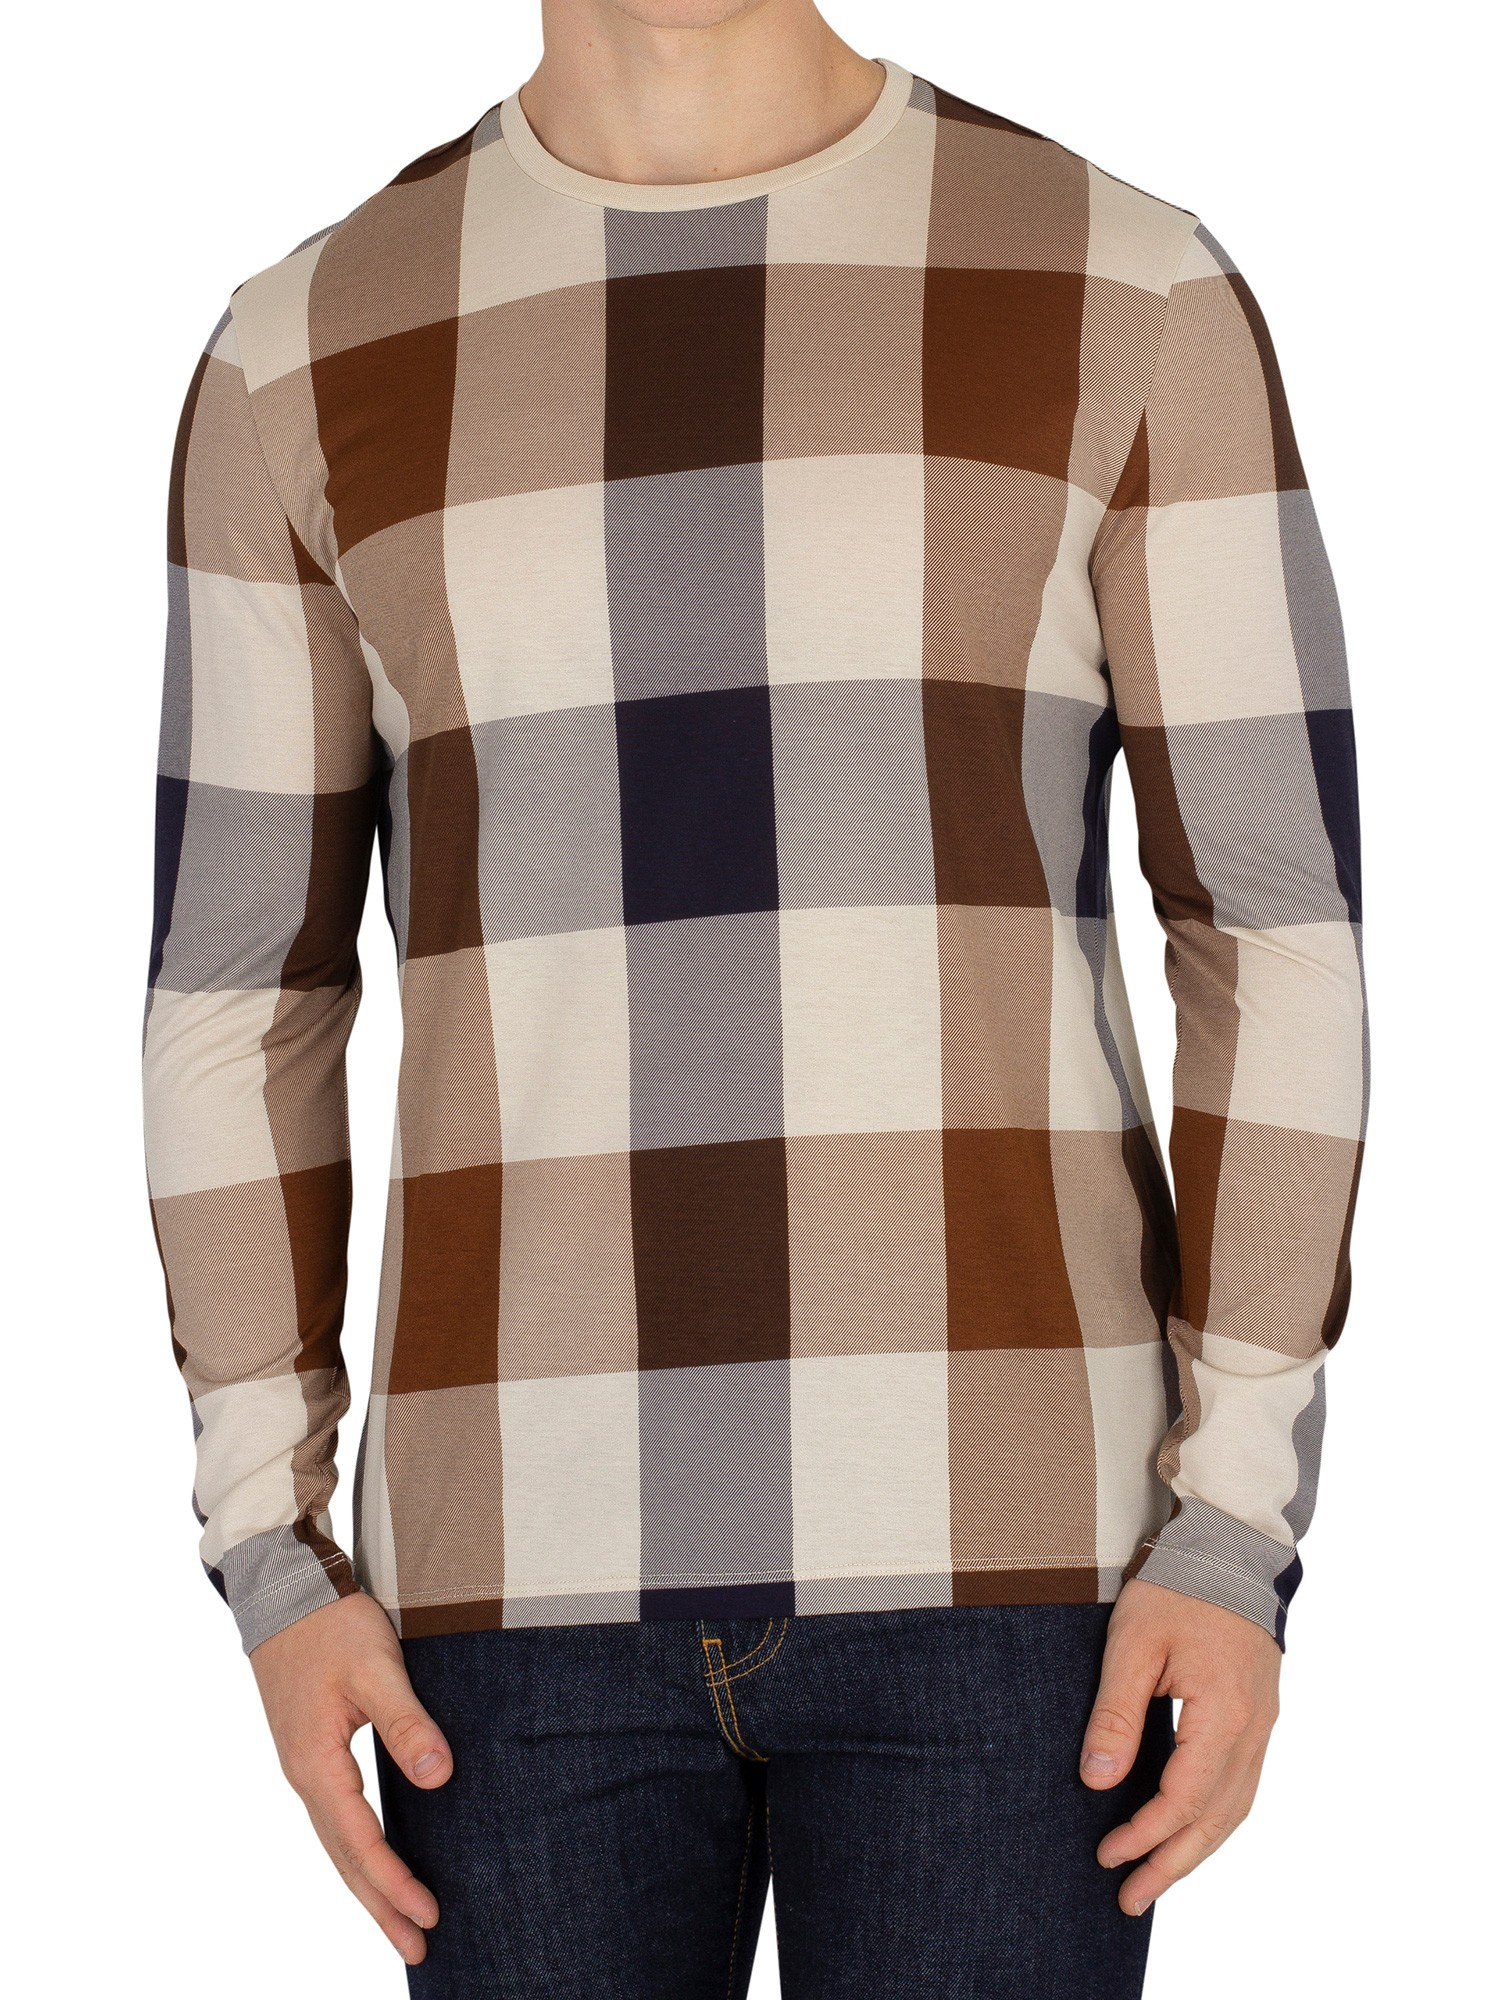 classic shoes fast delivery limited guantity Aquascutum Jed Longsleeved T-shirt - Vicuna